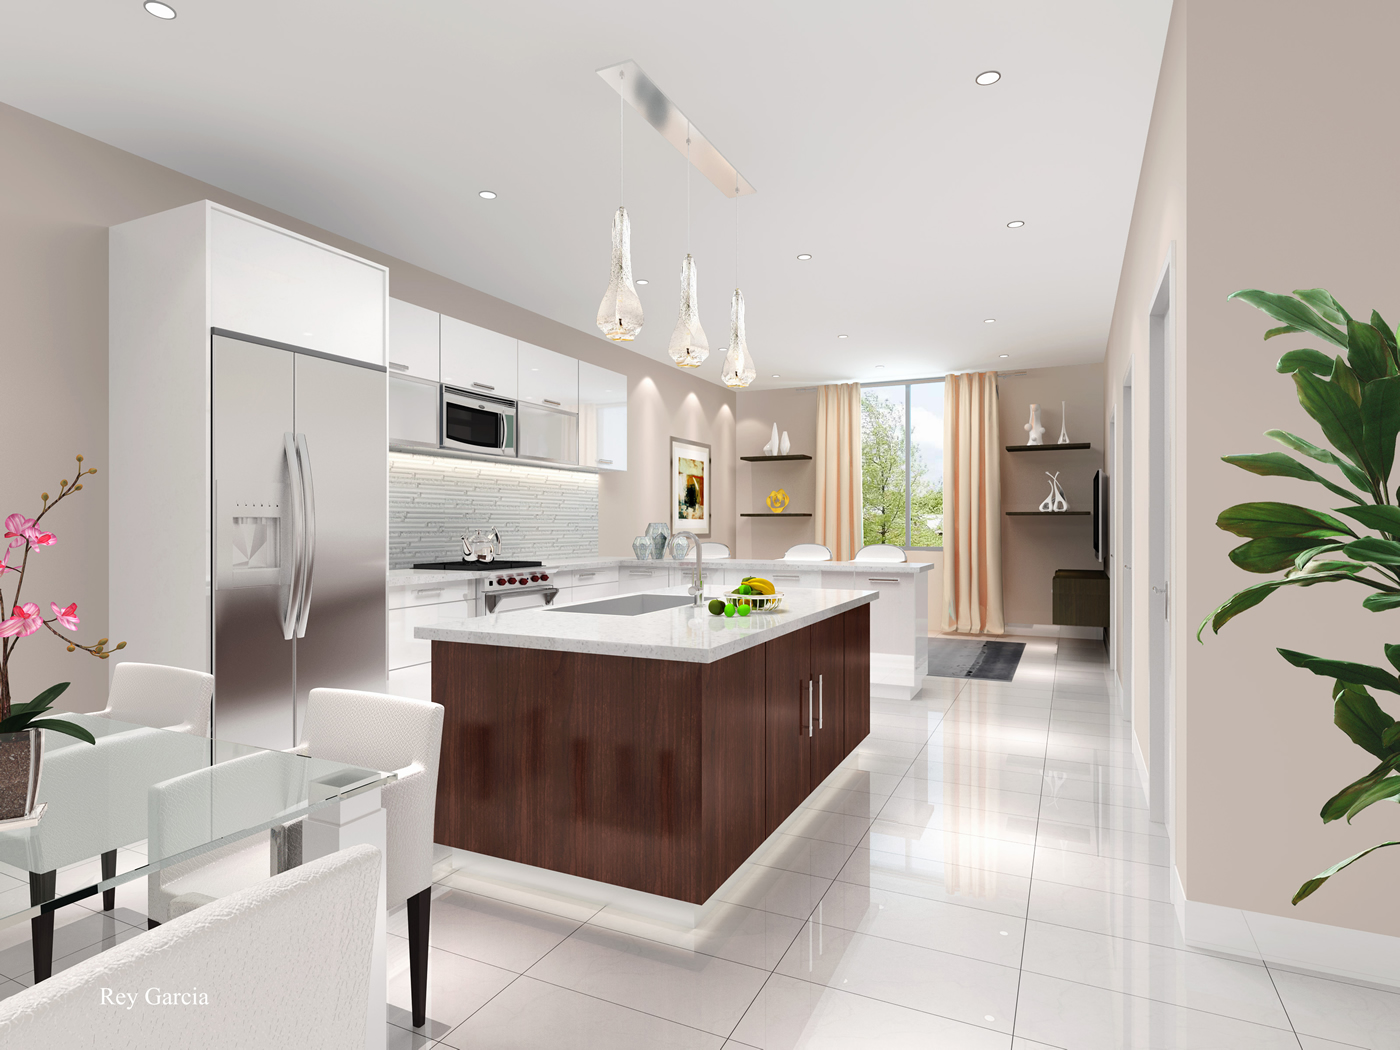 101 Bay Harbor new construction townhomes for sale in Bay HarborNew ...